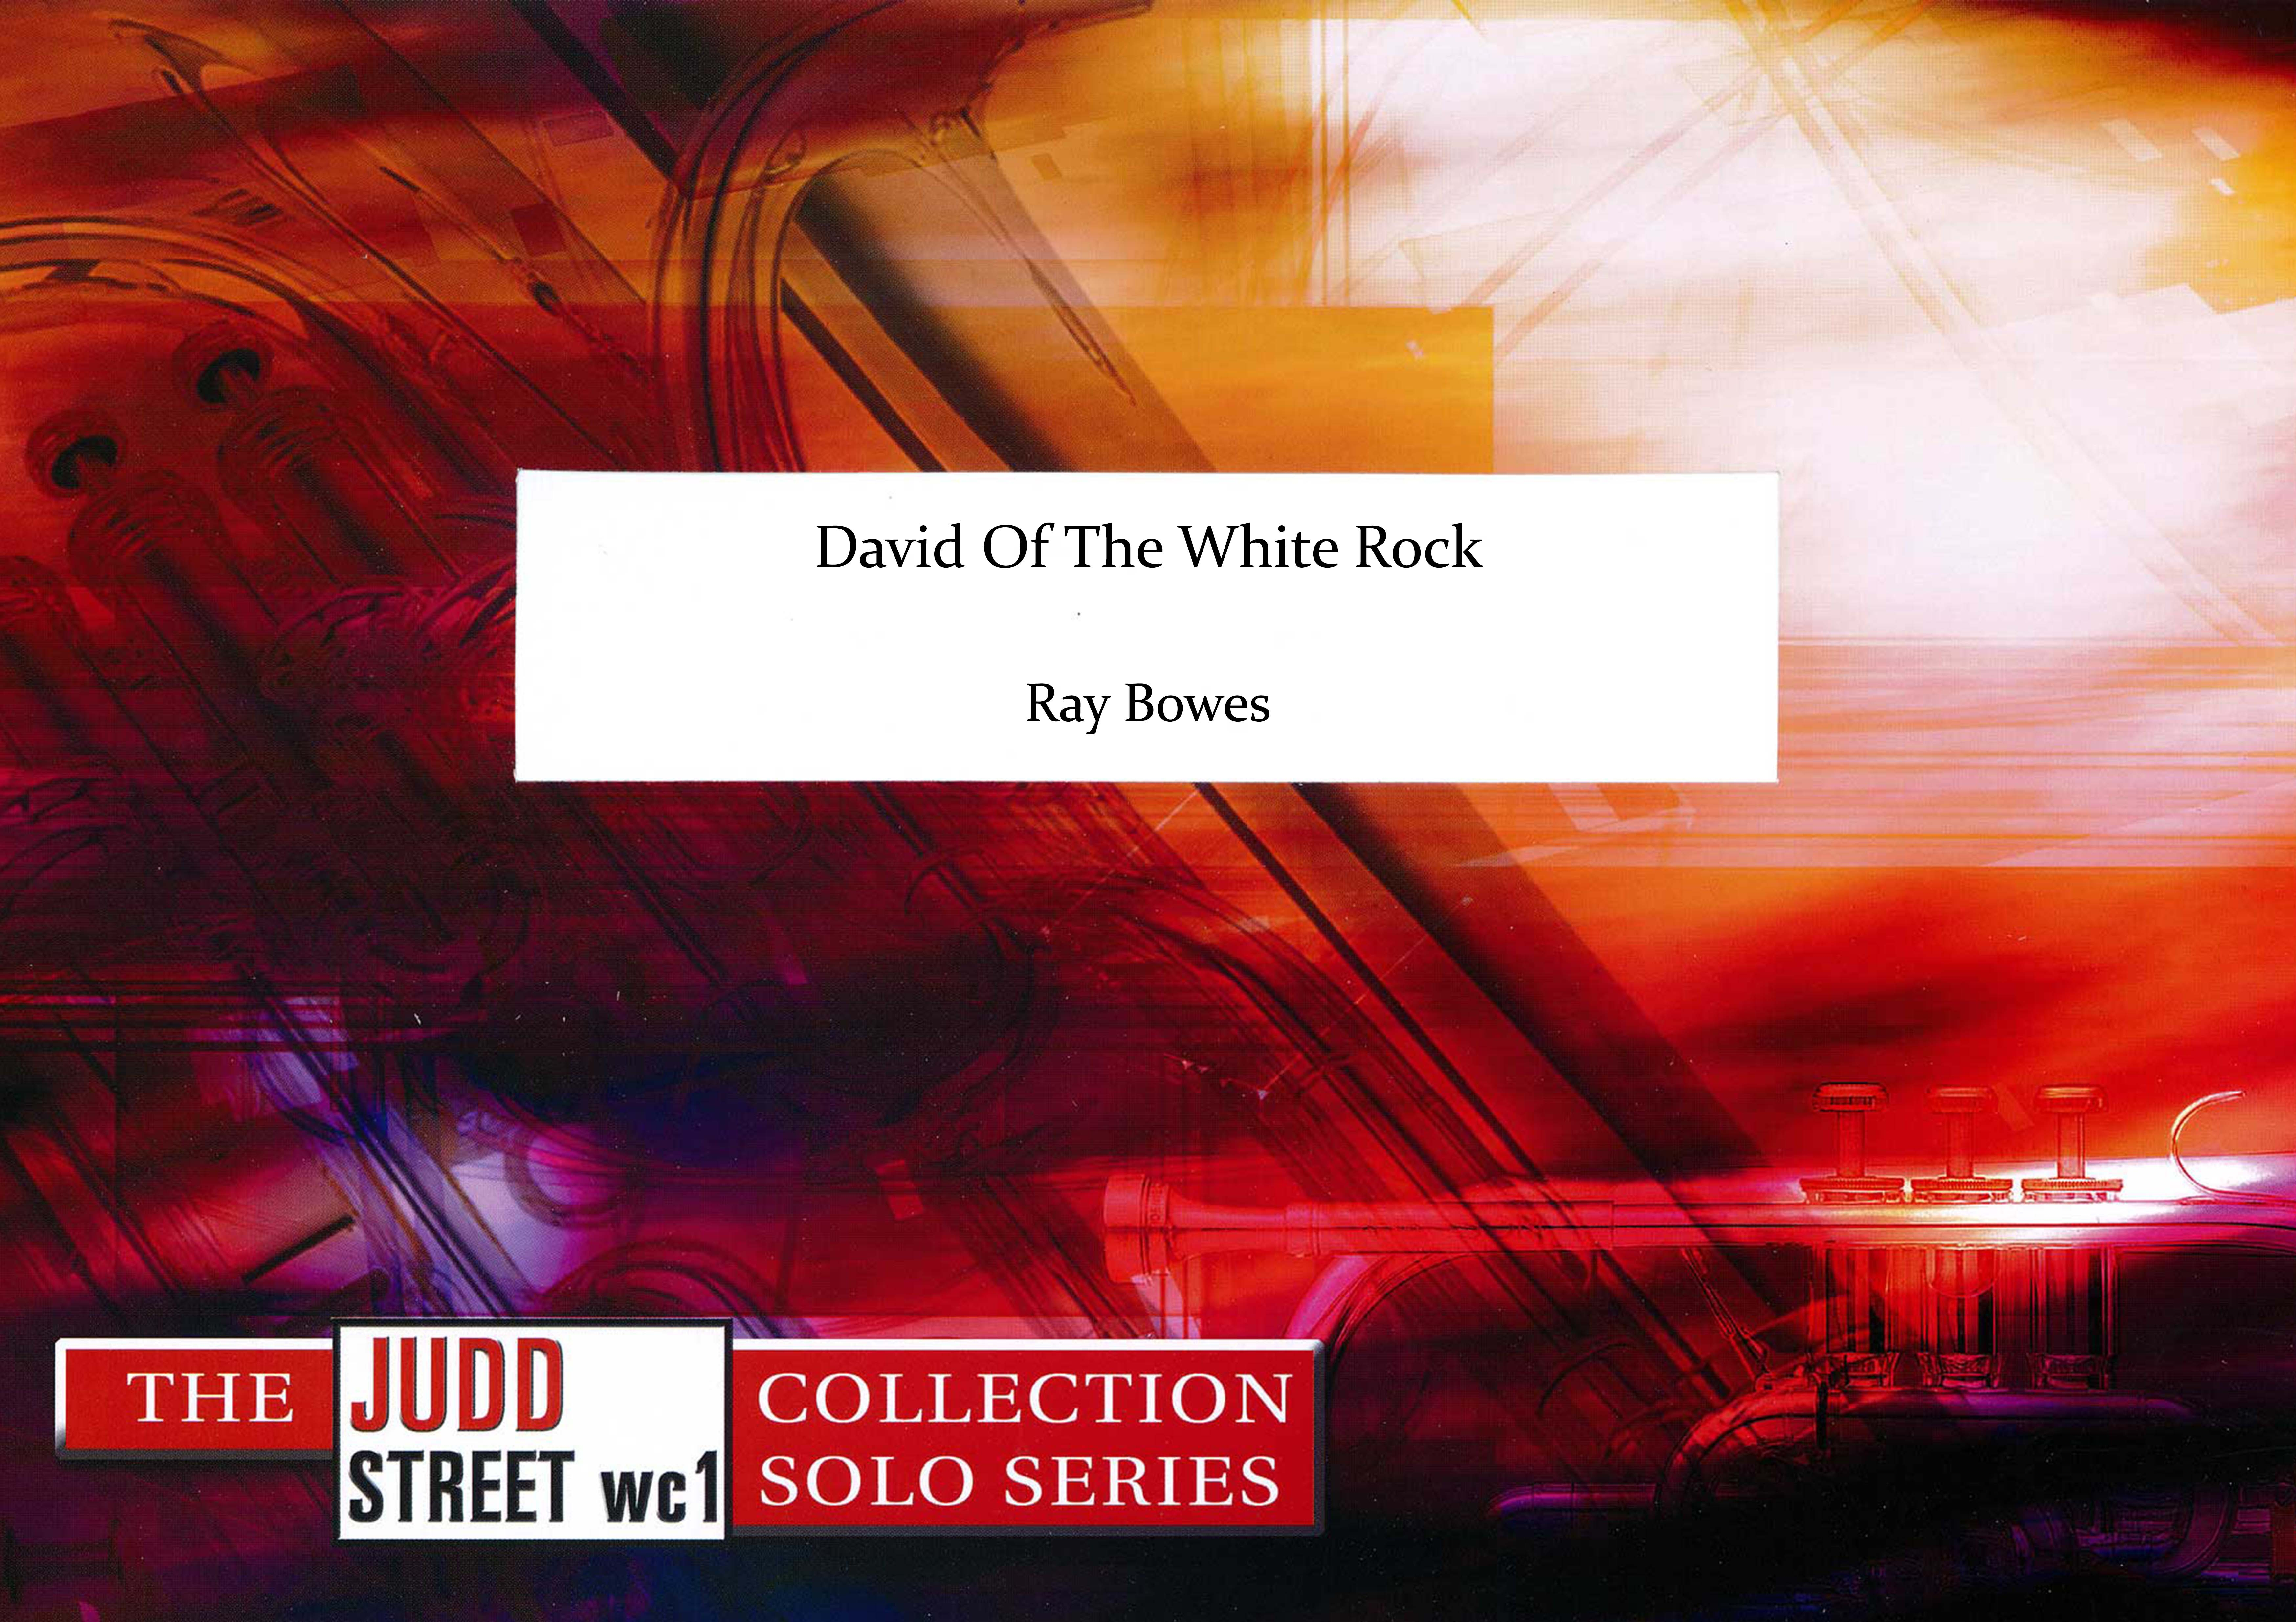 David Of The White Rock (Cornet Solo with Brass Band - Score only)